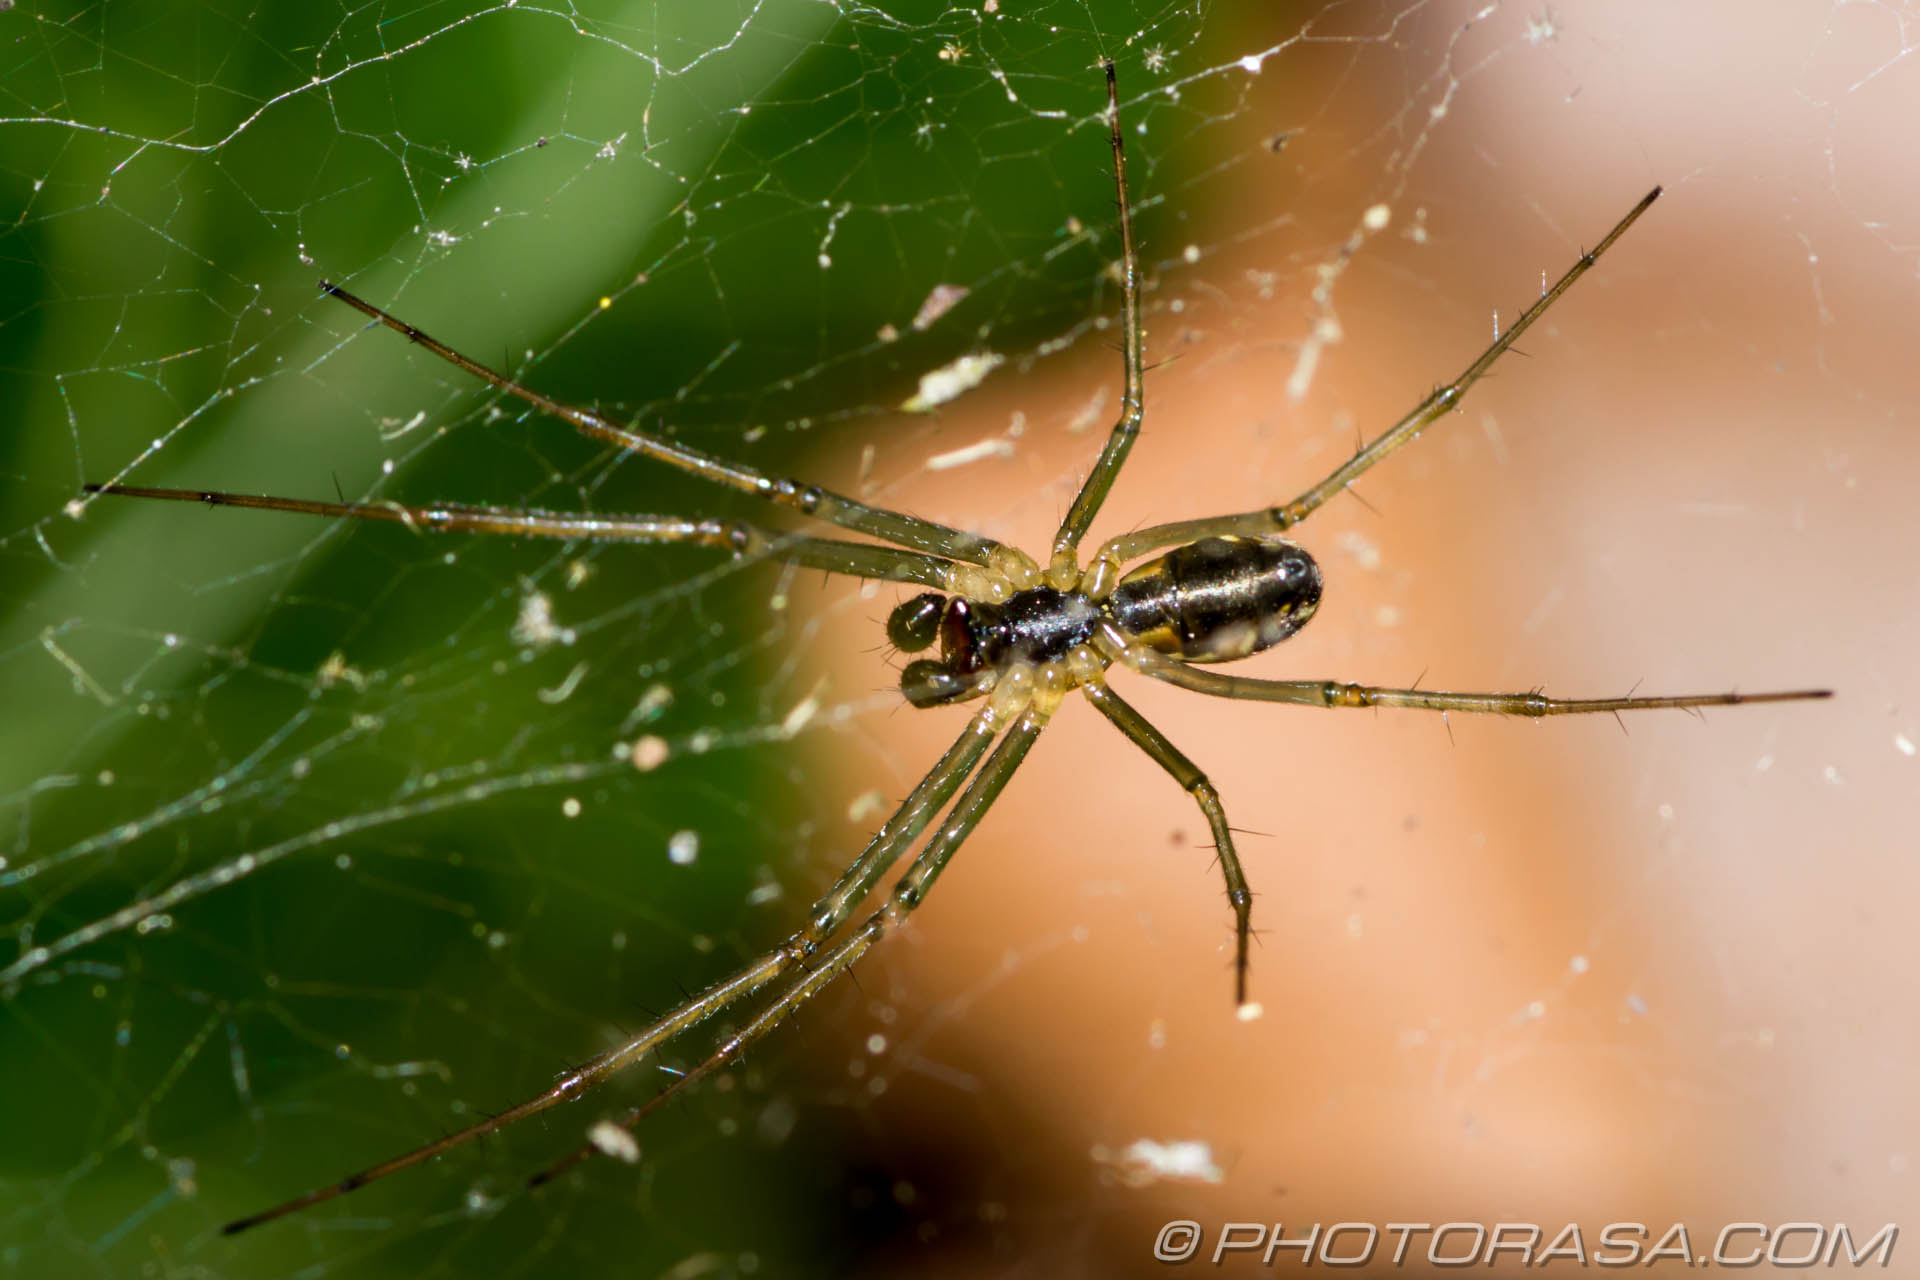 http://photorasa.com/common-orb-weaver-spiders/underside-of-little-spider-in-web/